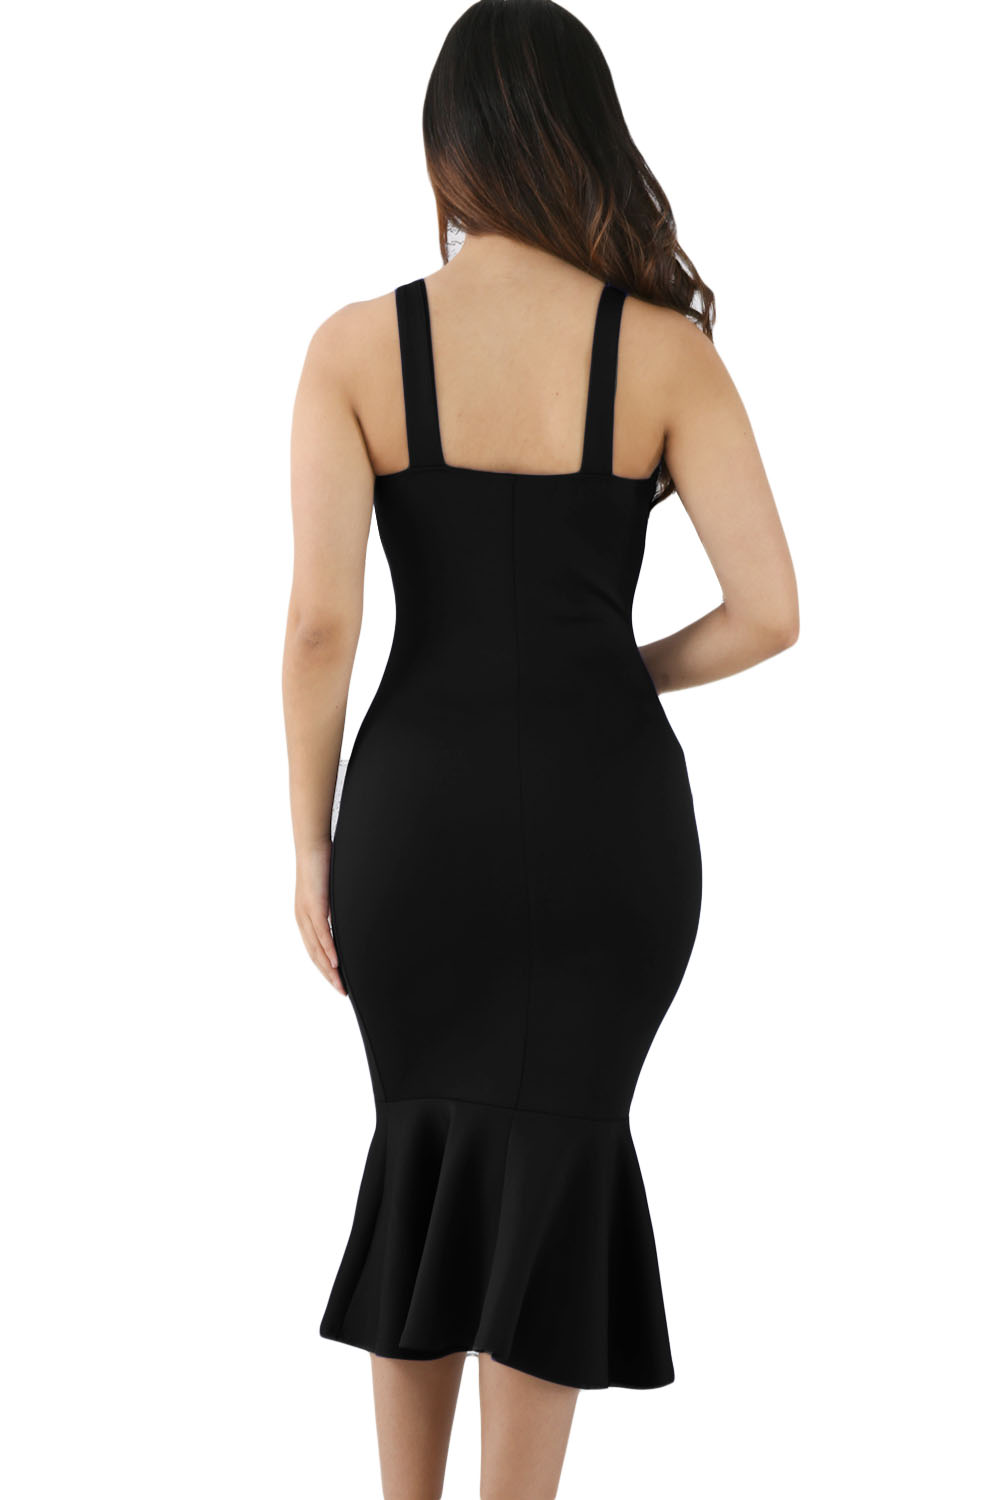 Black Elegant Mermaid Bodycon Dress